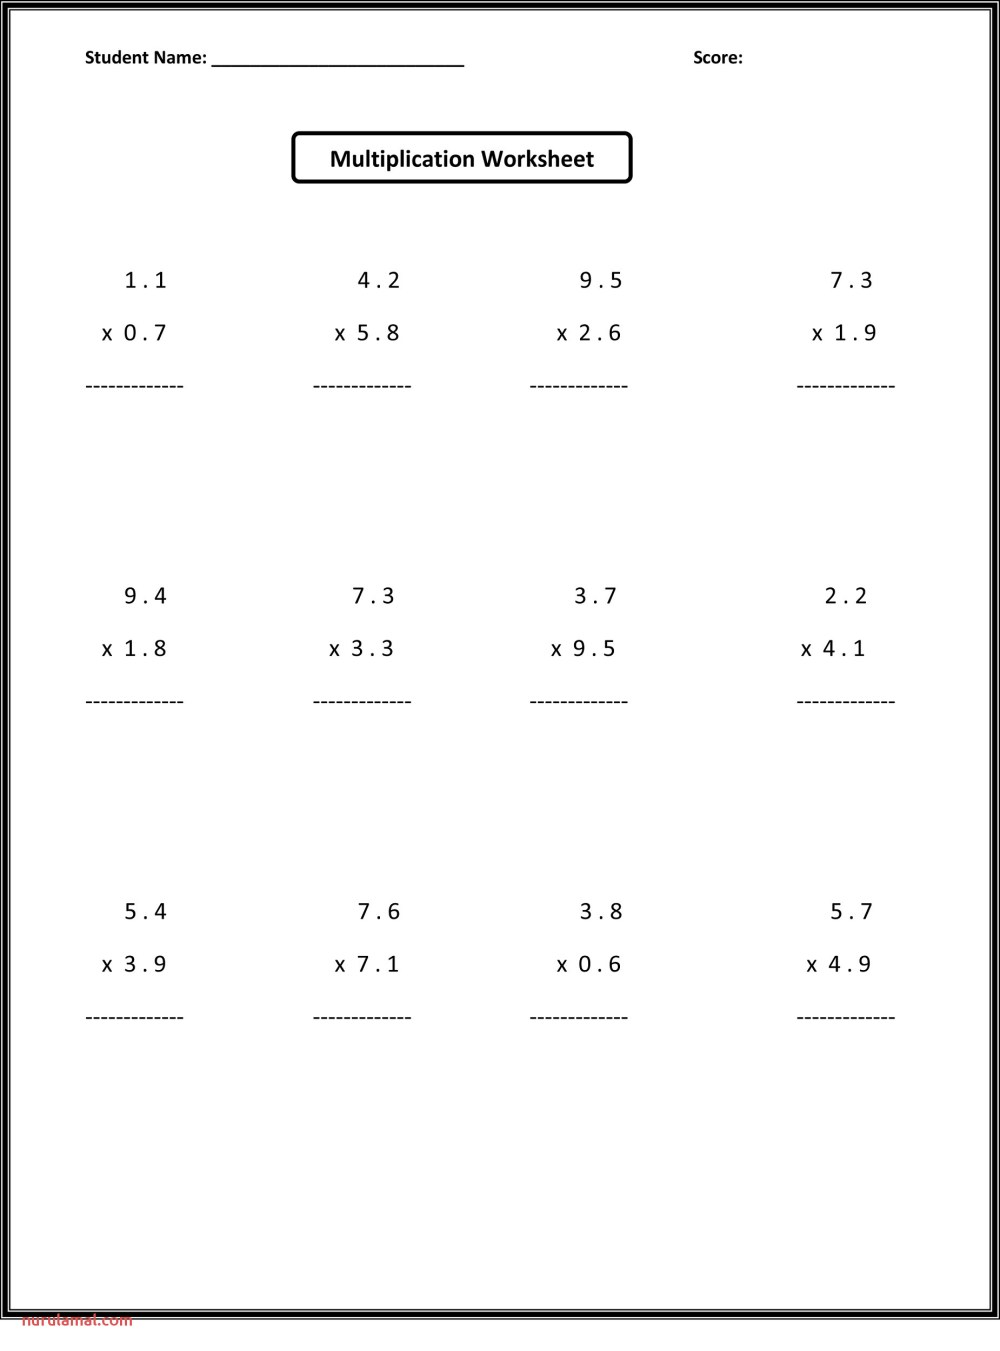 medium resolution of Atmosphere Math Worksheets   Printable Worksheets and Activities for  Teachers